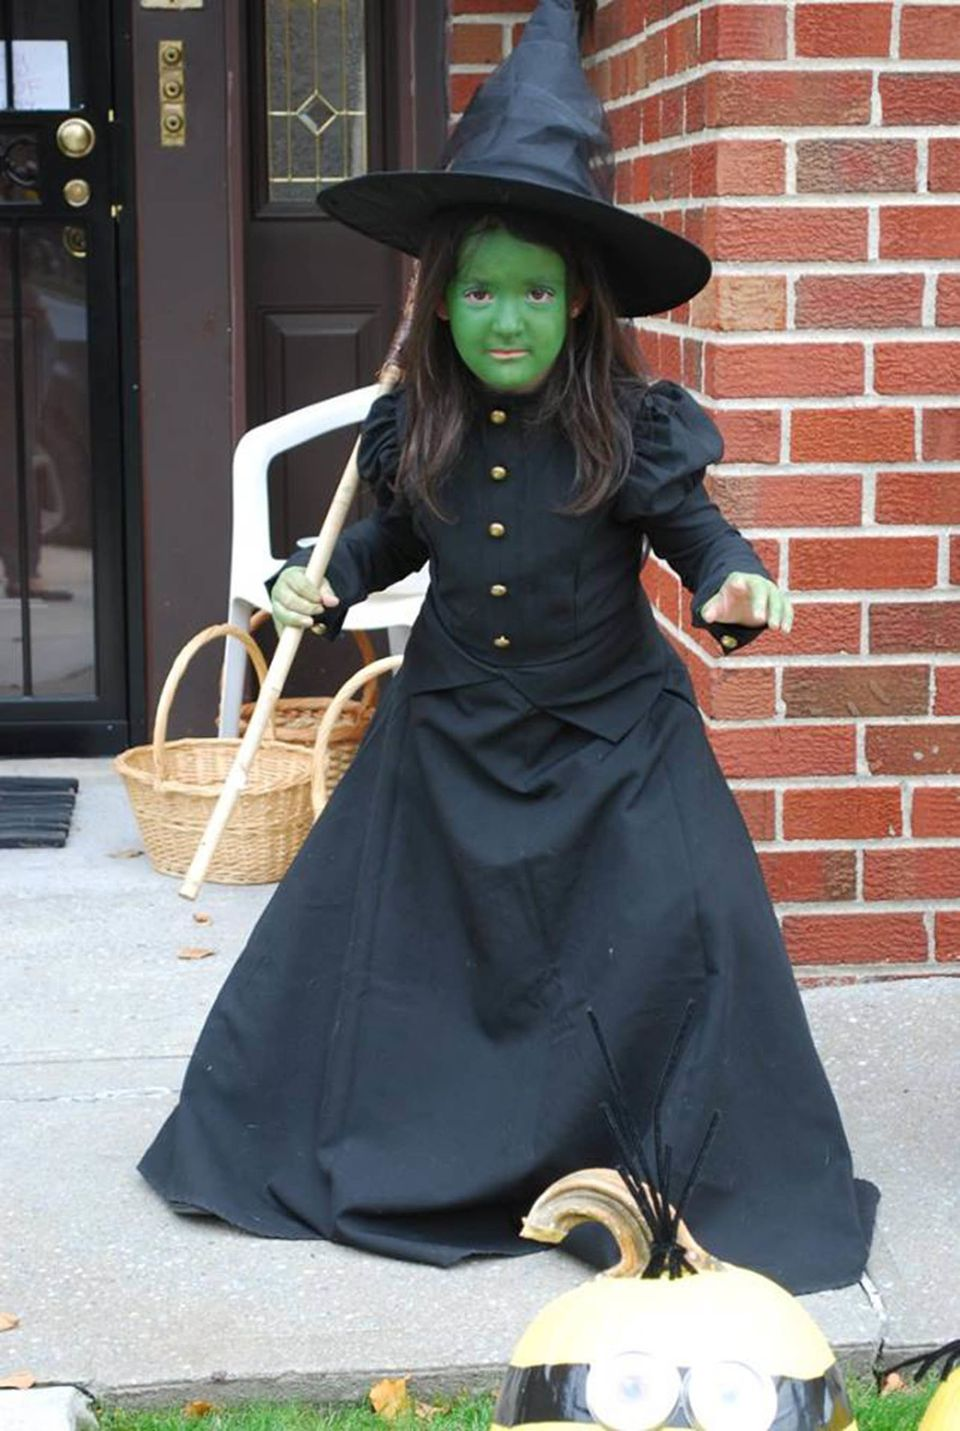 34 creative halloween costumes for fierce girls | huffpost life